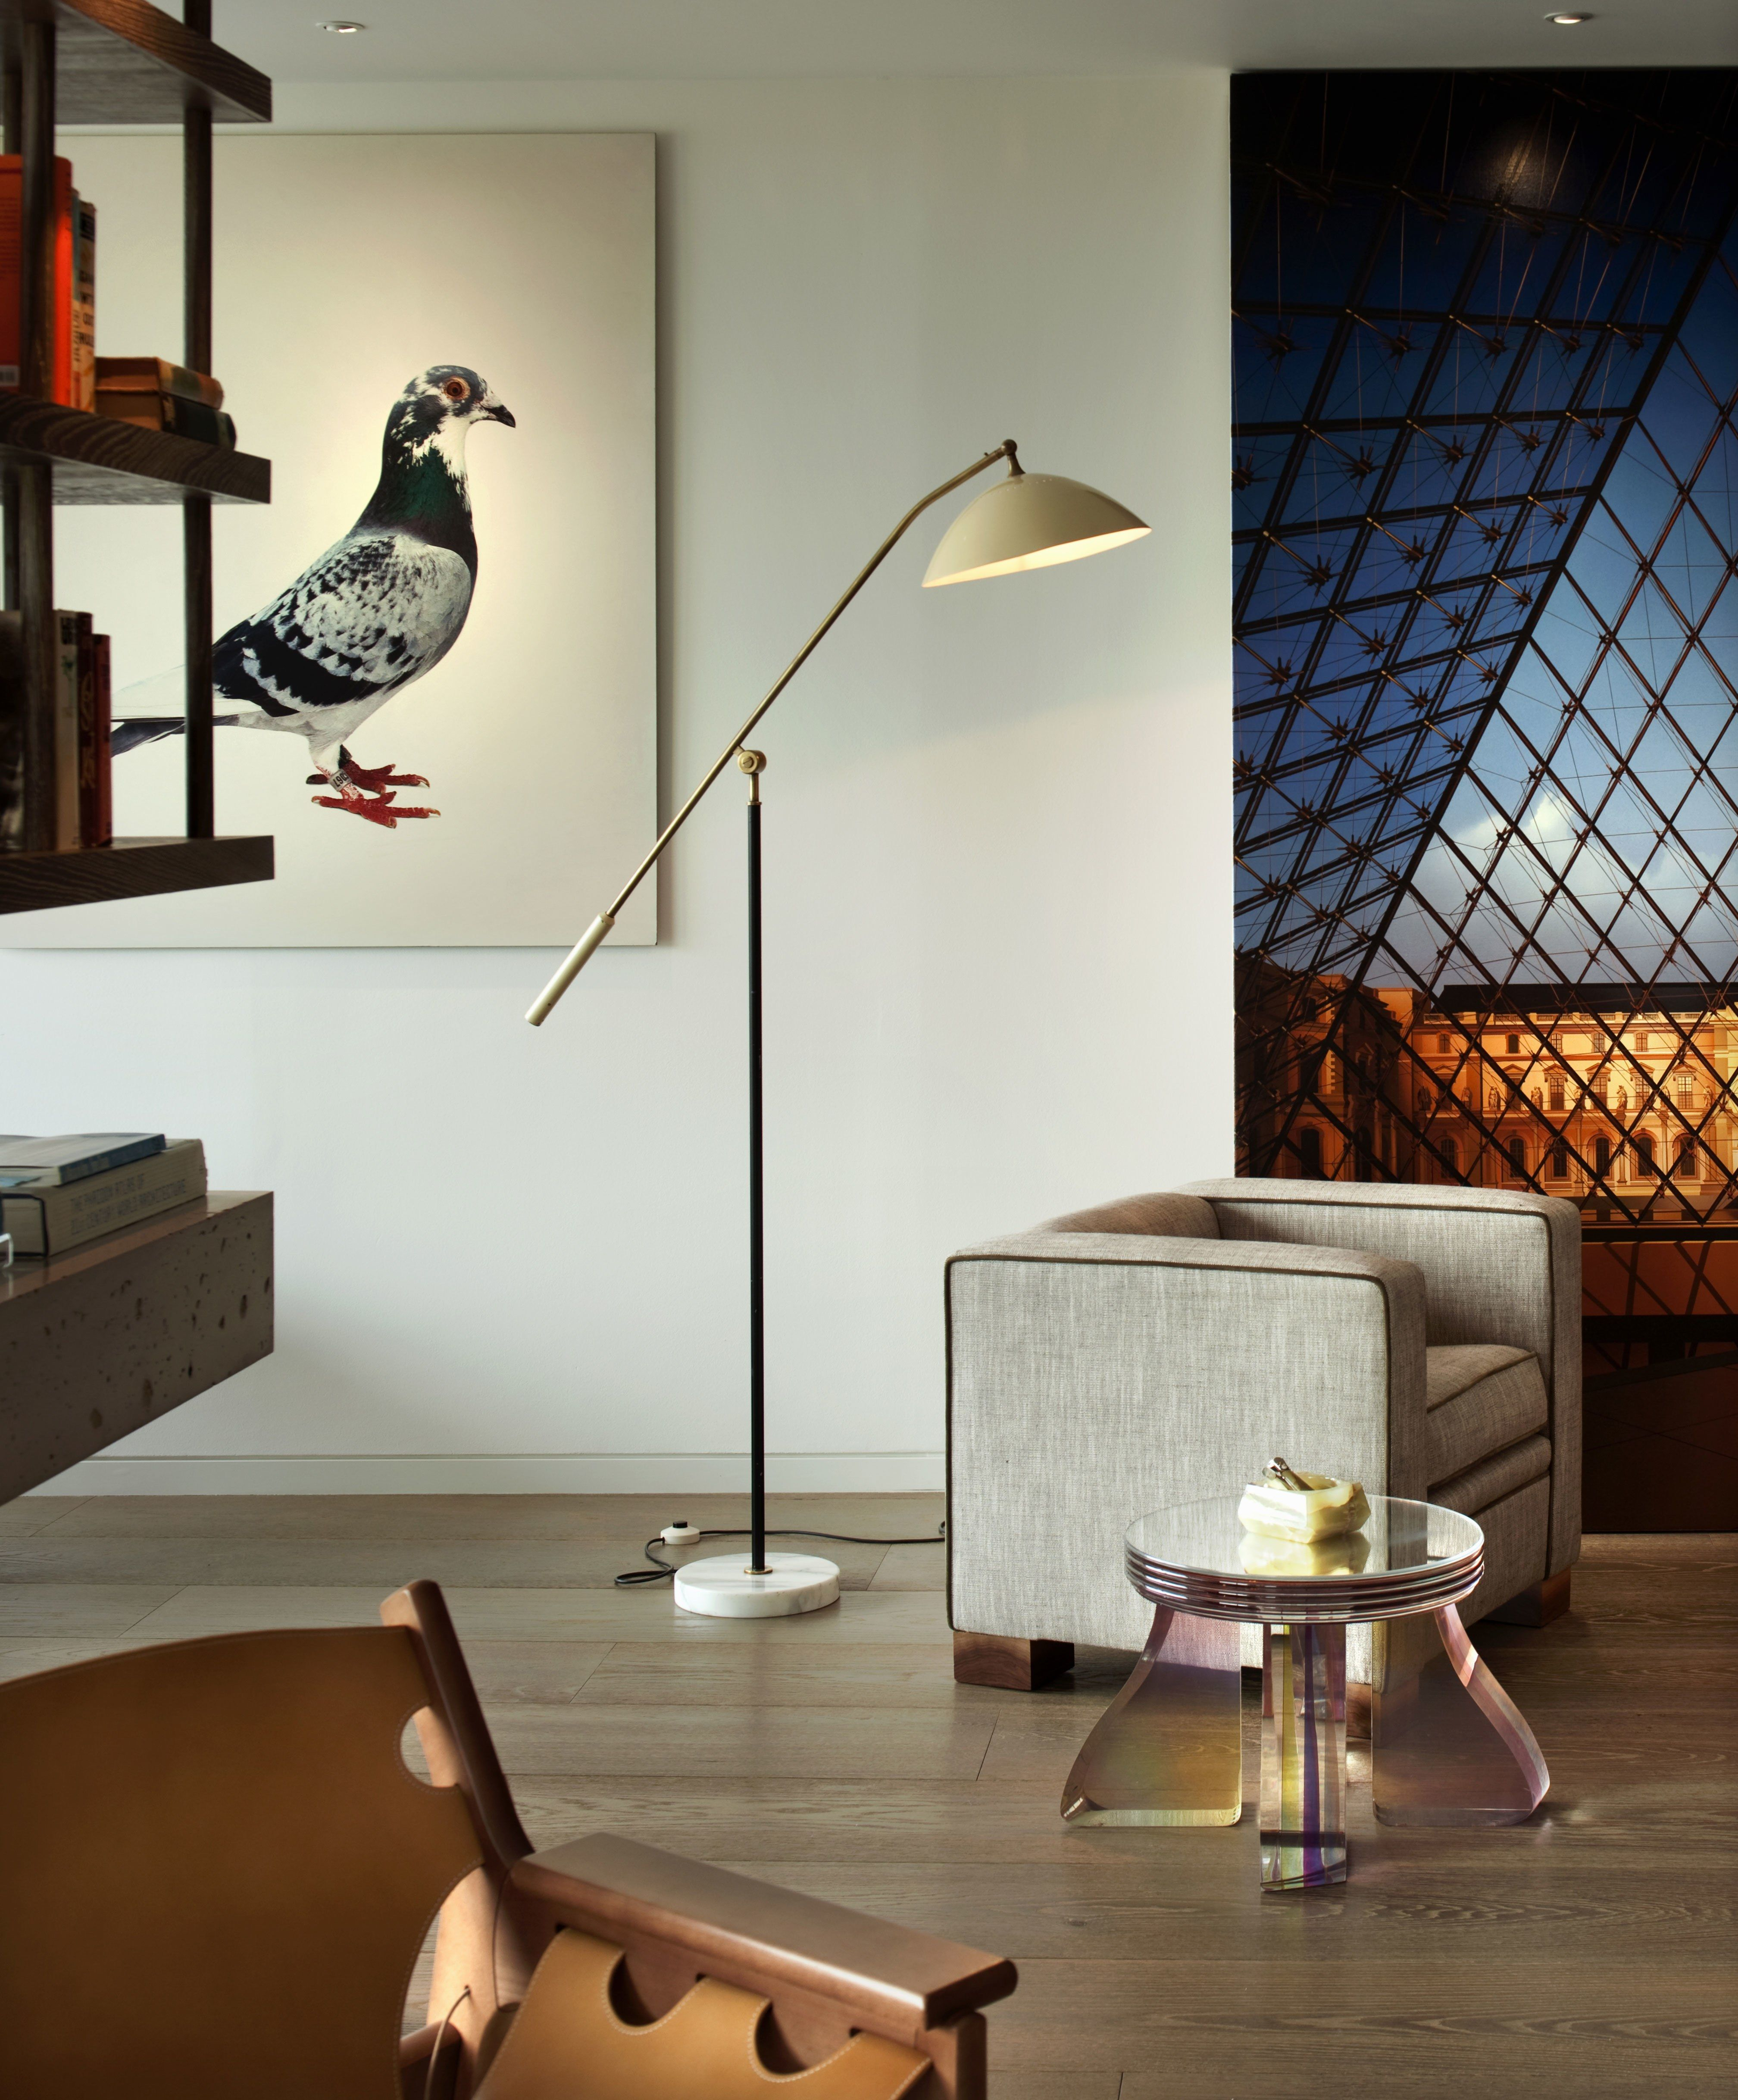 How To Choose The Right Art For A Room